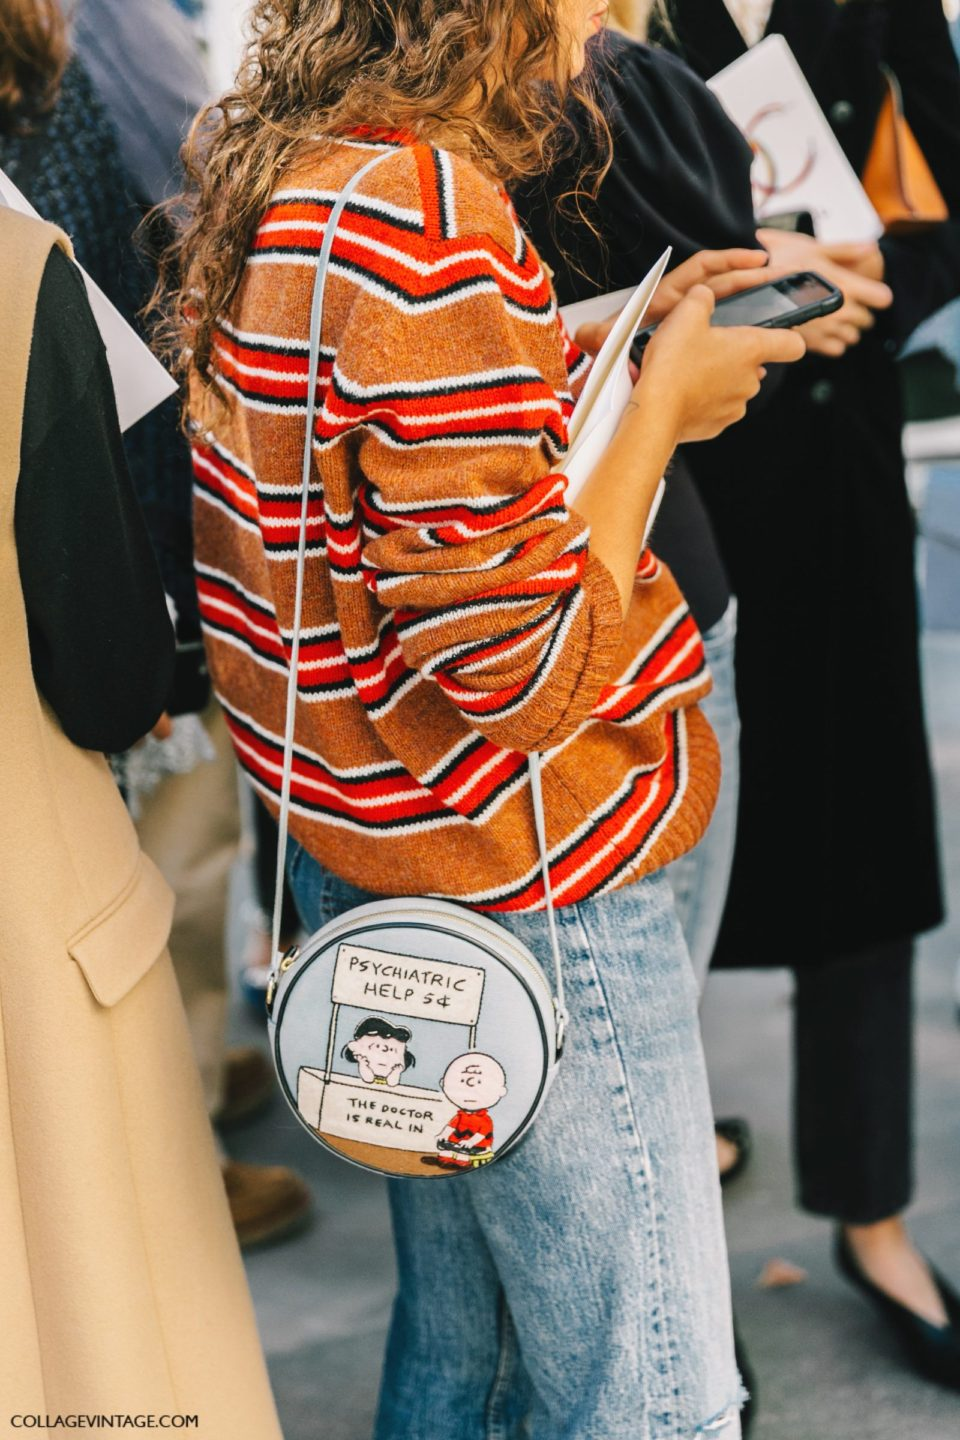 pfw-paris_fashion_week_ss17-street_style-outfits-collage_vintage-chanel-ellery-39-1600x2400